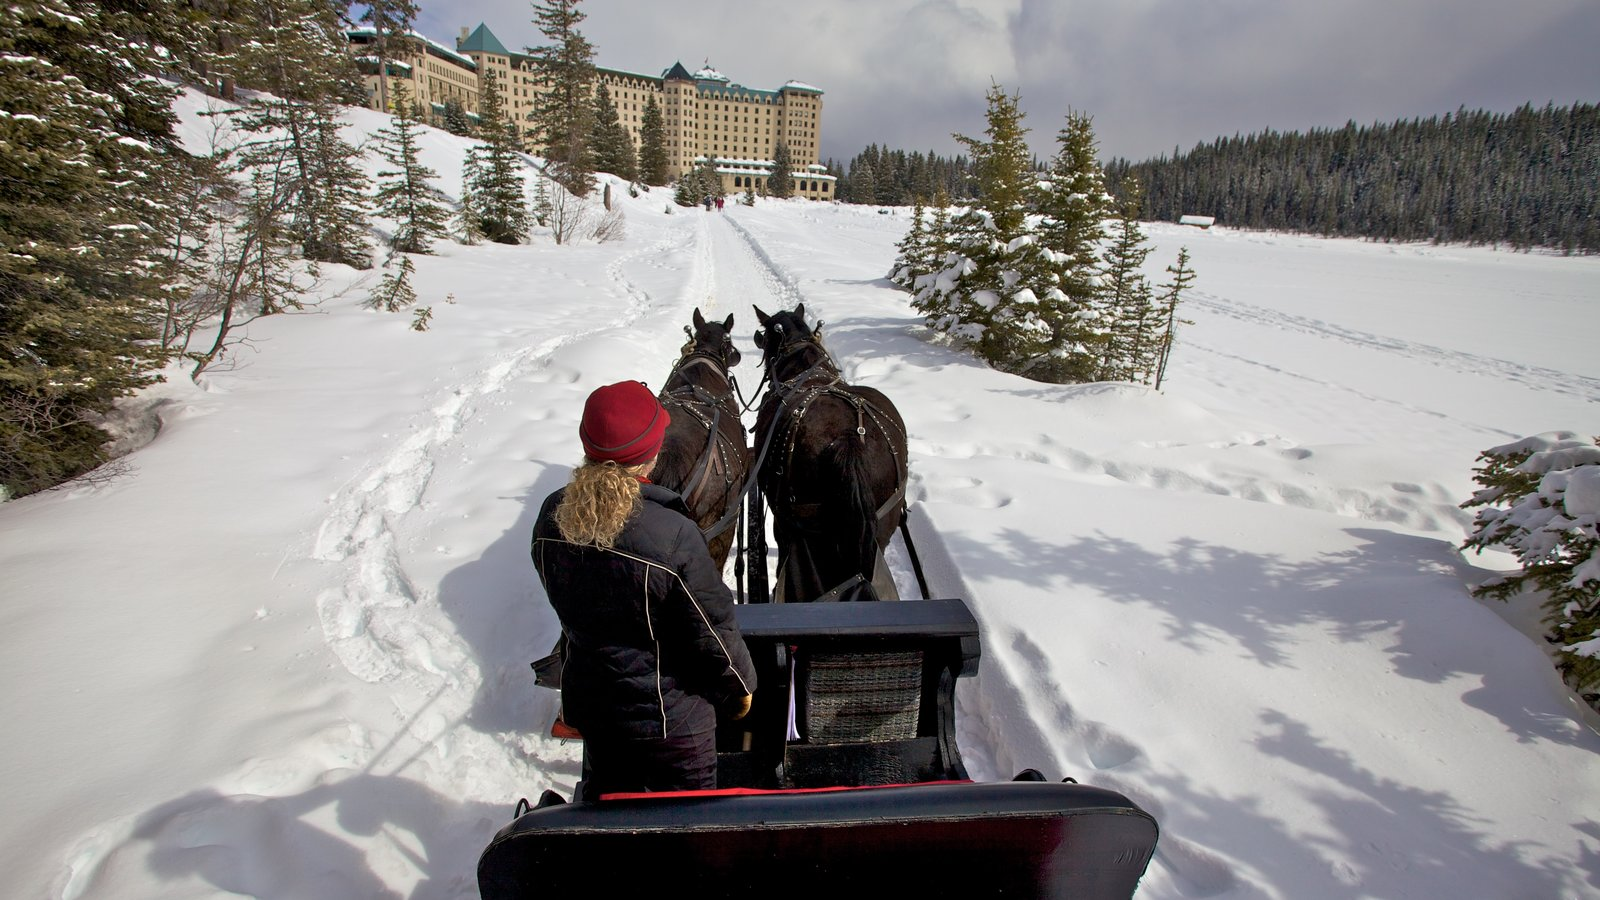 Lake Louise featuring horse riding and snow as well as an individual female